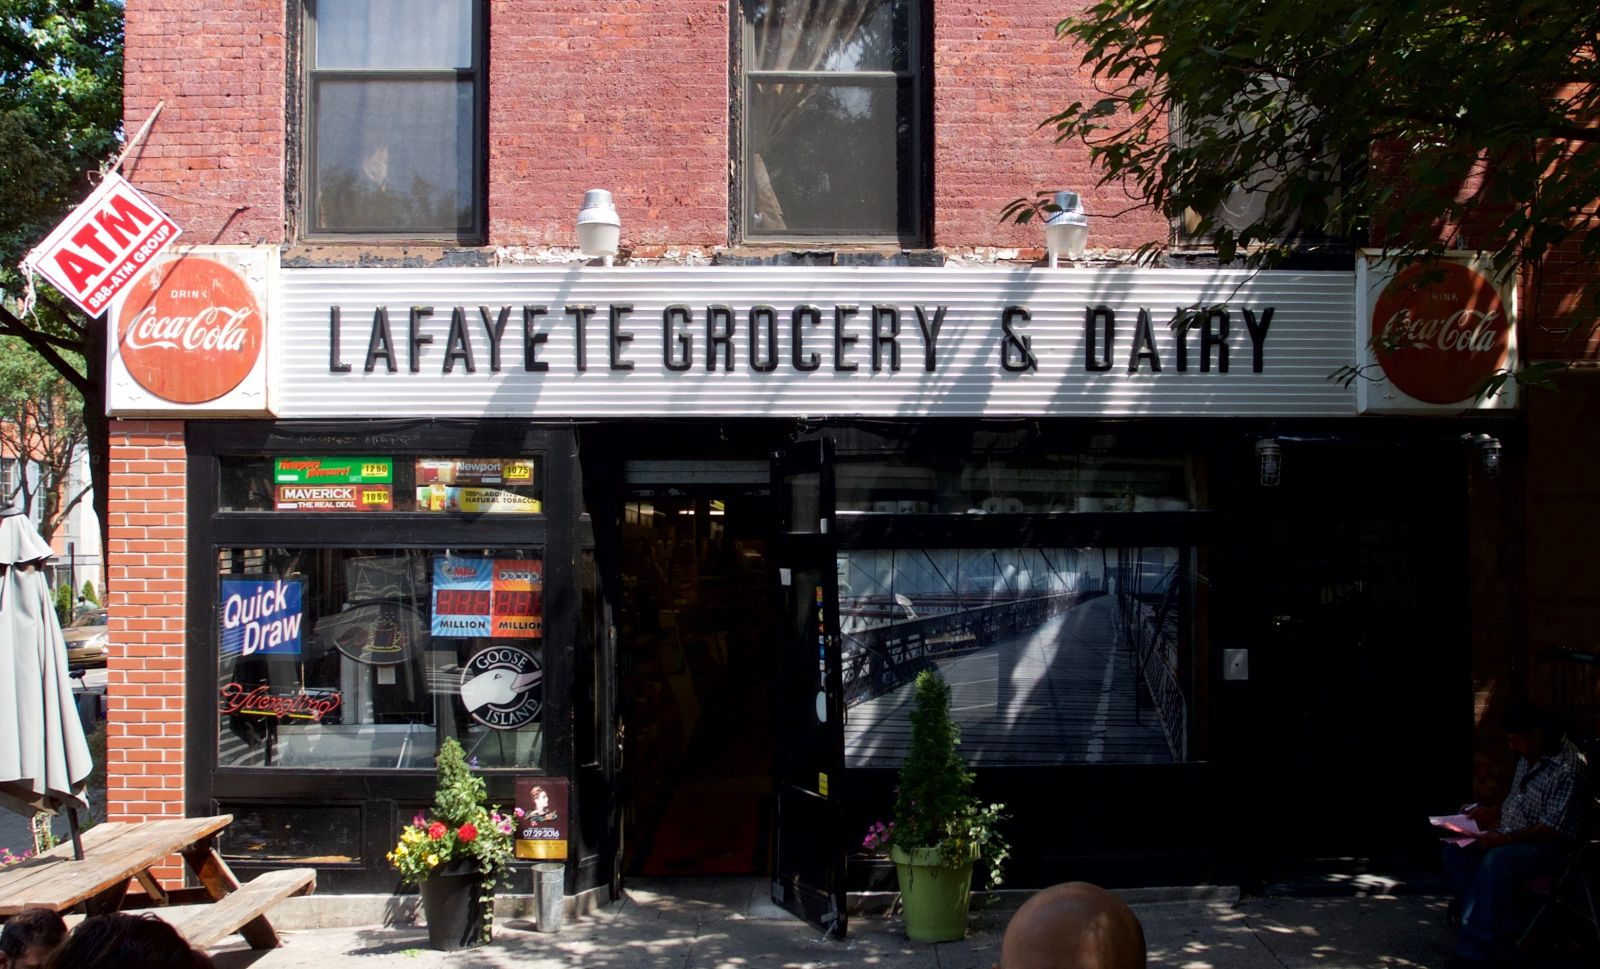 Lafayet(t)e Grocery & Dairy | Prefab Coca-Cola sign | Flickr